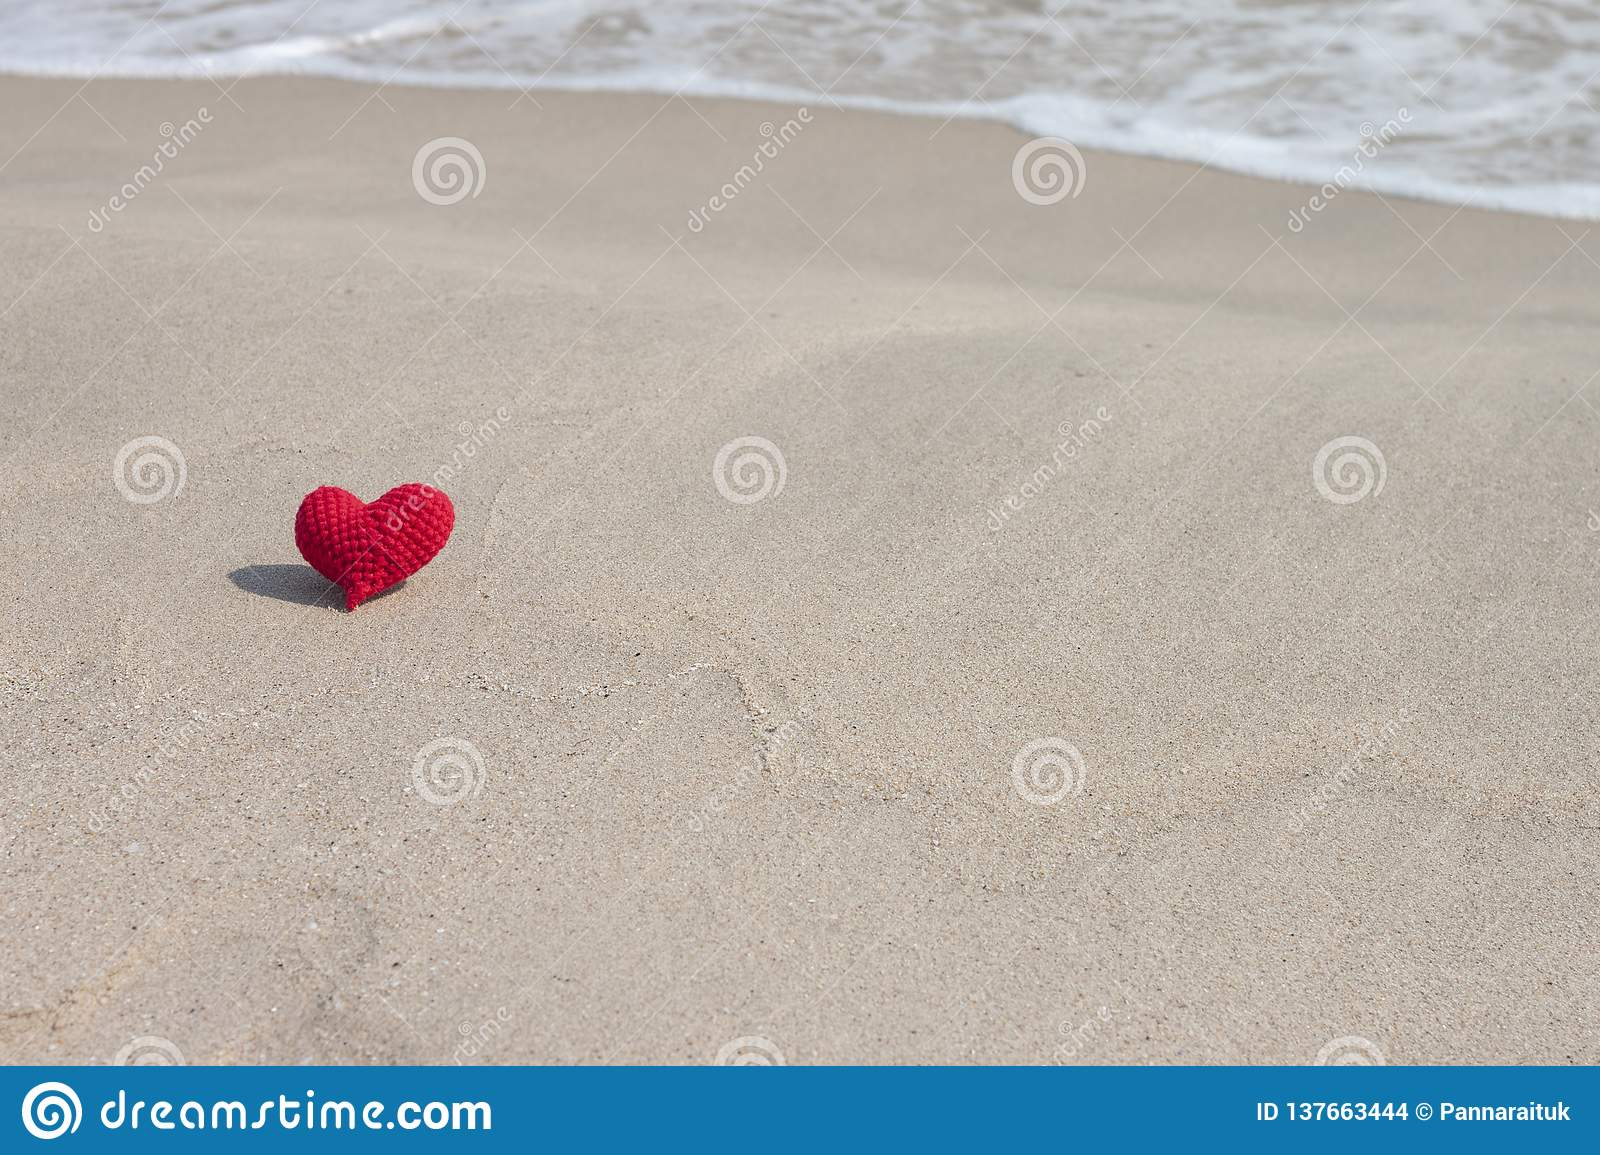 Crochet Red Heart With Yarn On Sand Beach For Valentine`s